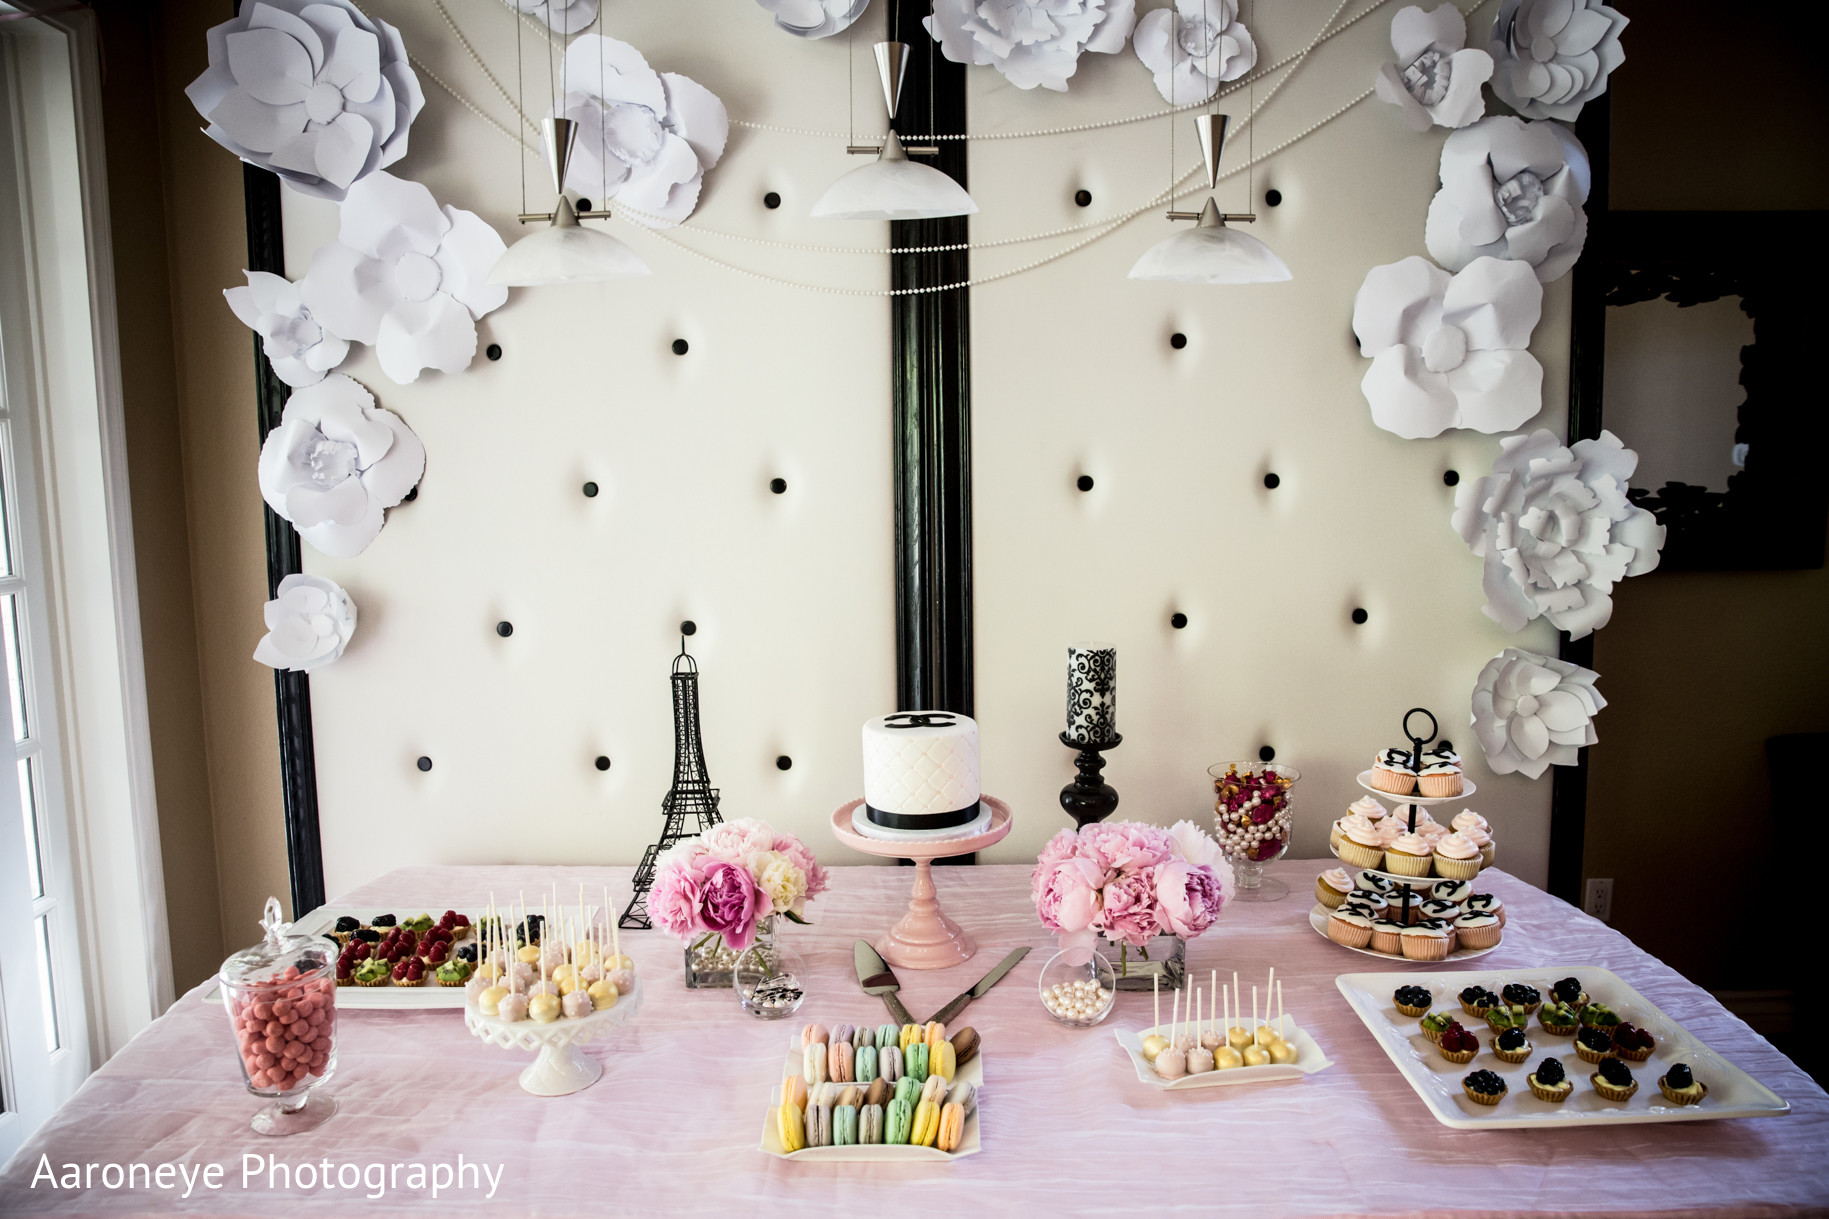 Chanel-Themed Indian Bridal Shower by Aaroneye Photography